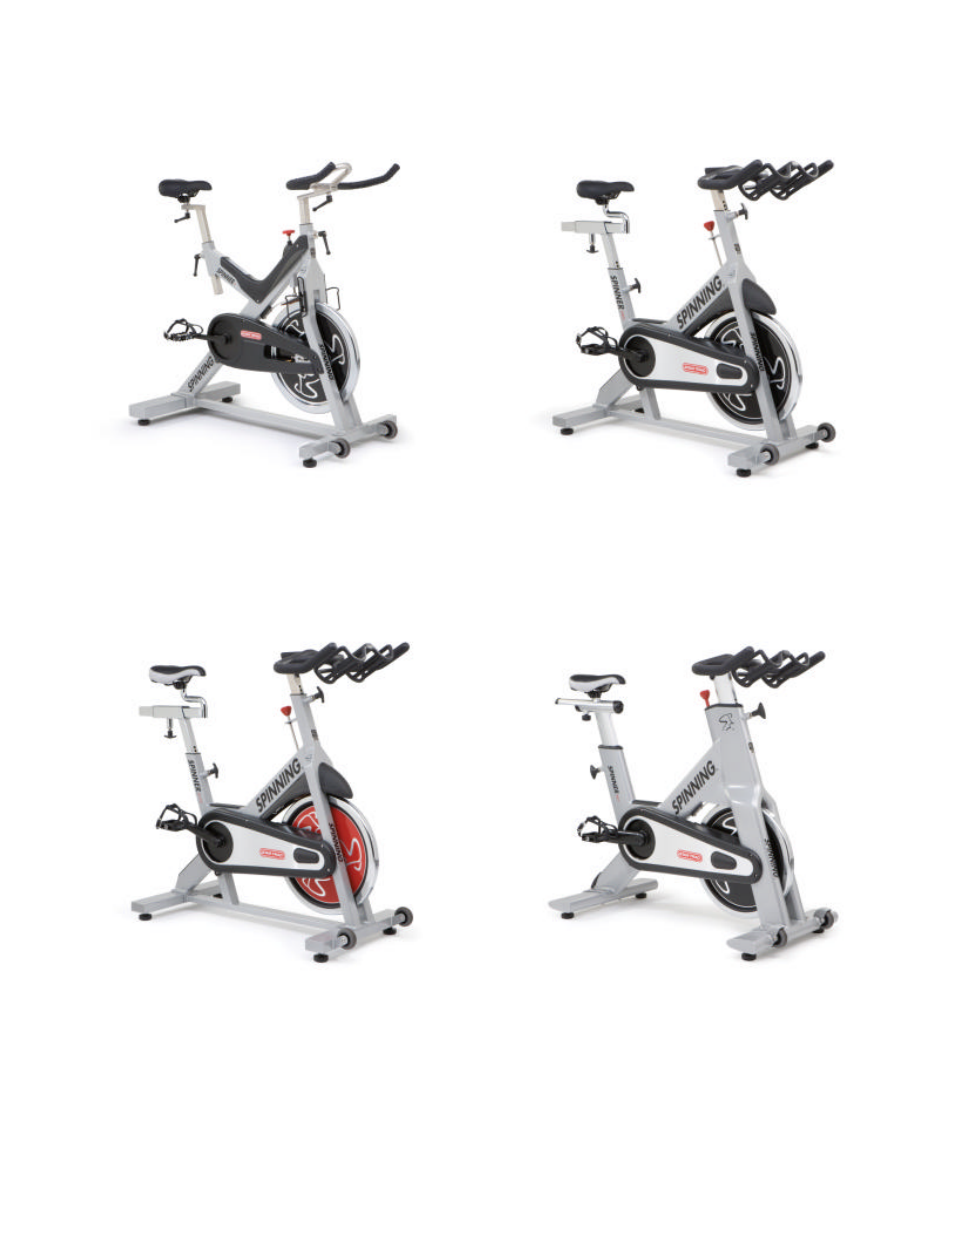 Owners manual spinningâ® computer star trac support.